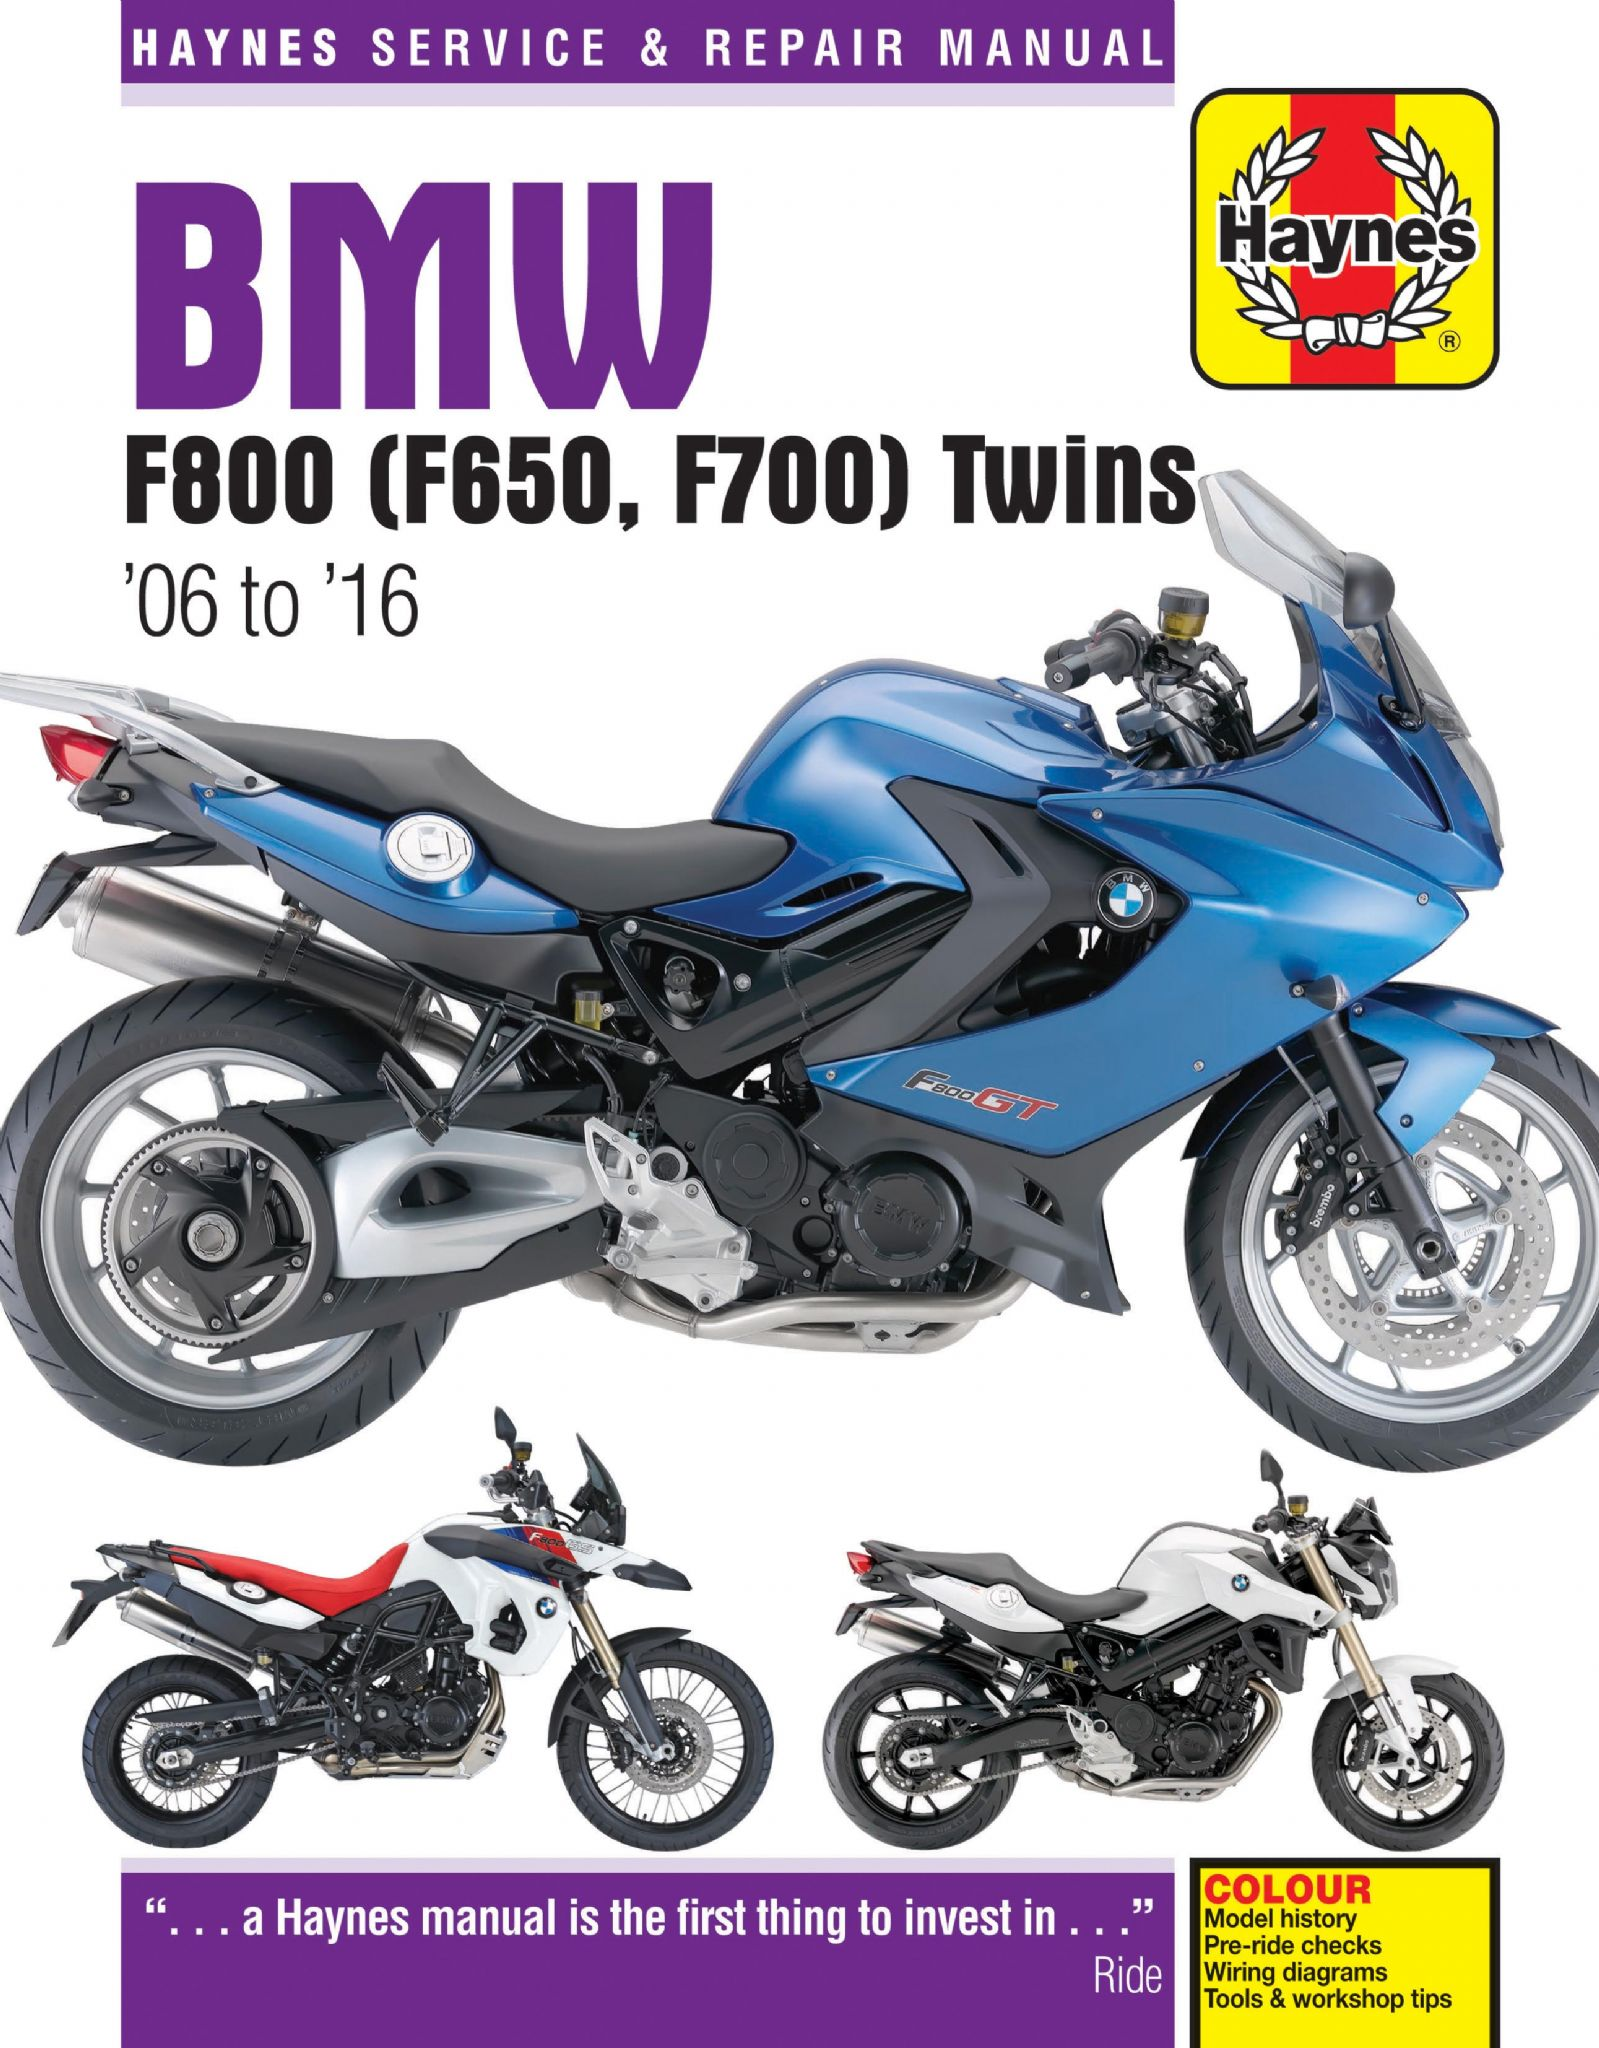 Bmw F800 F650 F700 Twins 06 17 Haynes Manual Wiring Diagrams